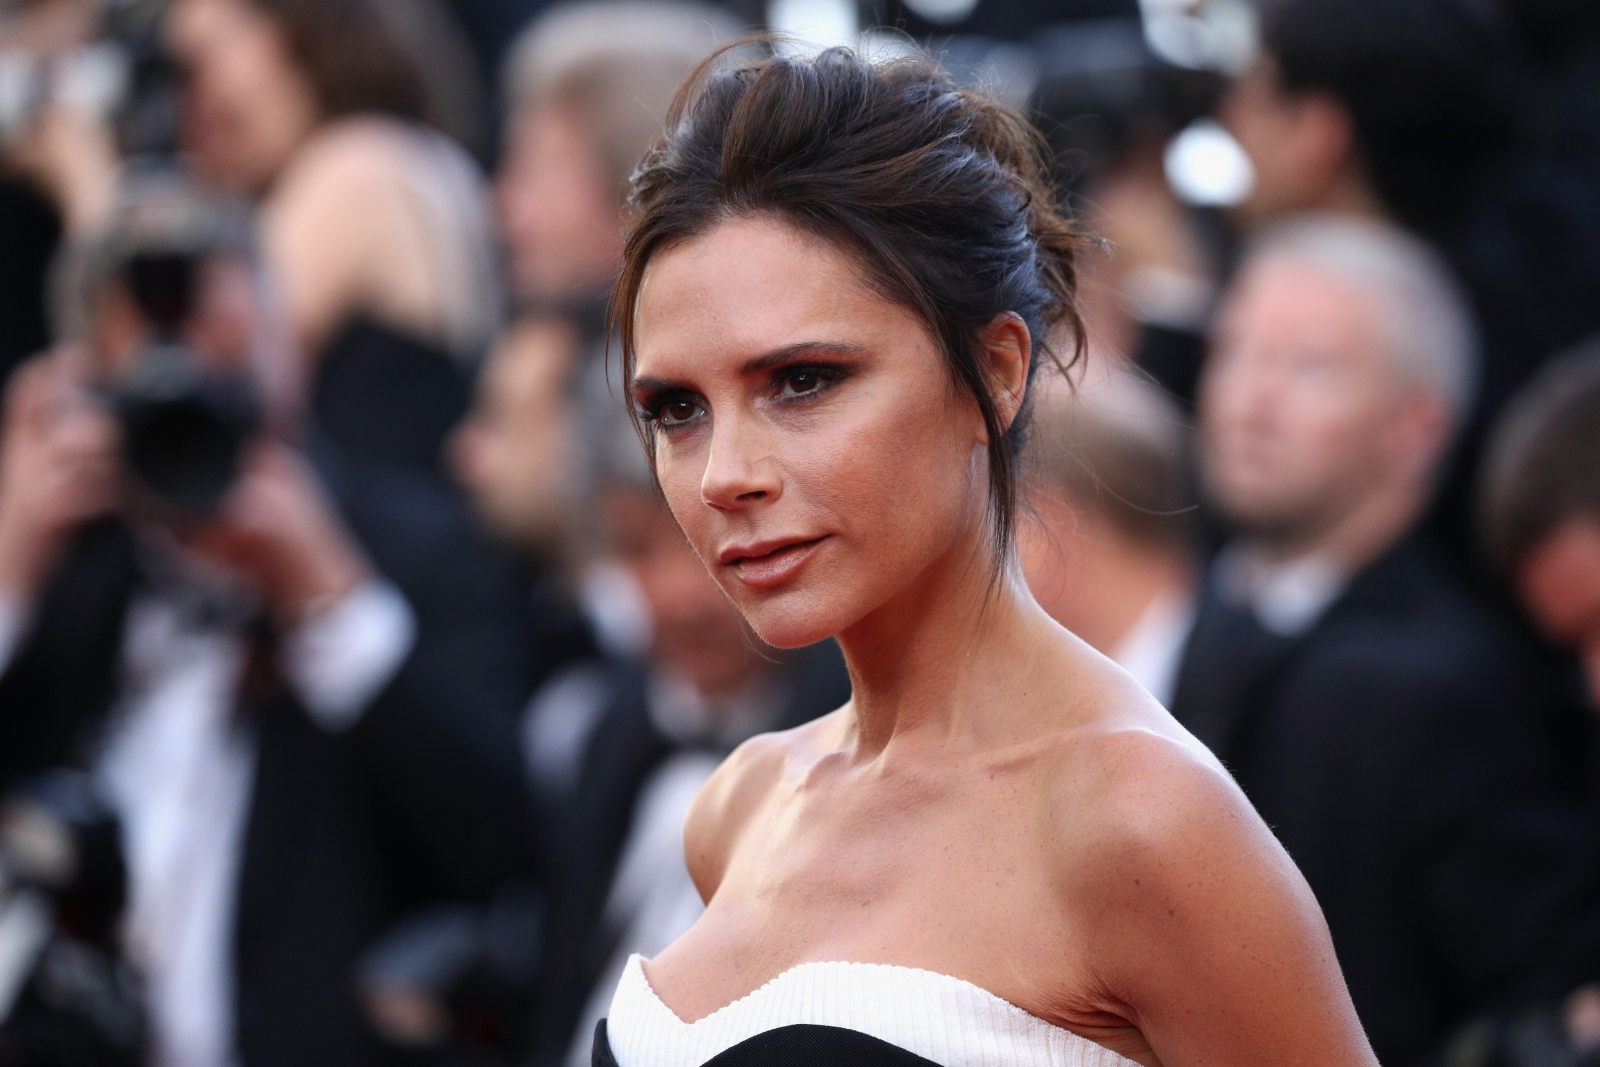 Victoria Beckham taking legal advice over Pizza Parlor advertisement